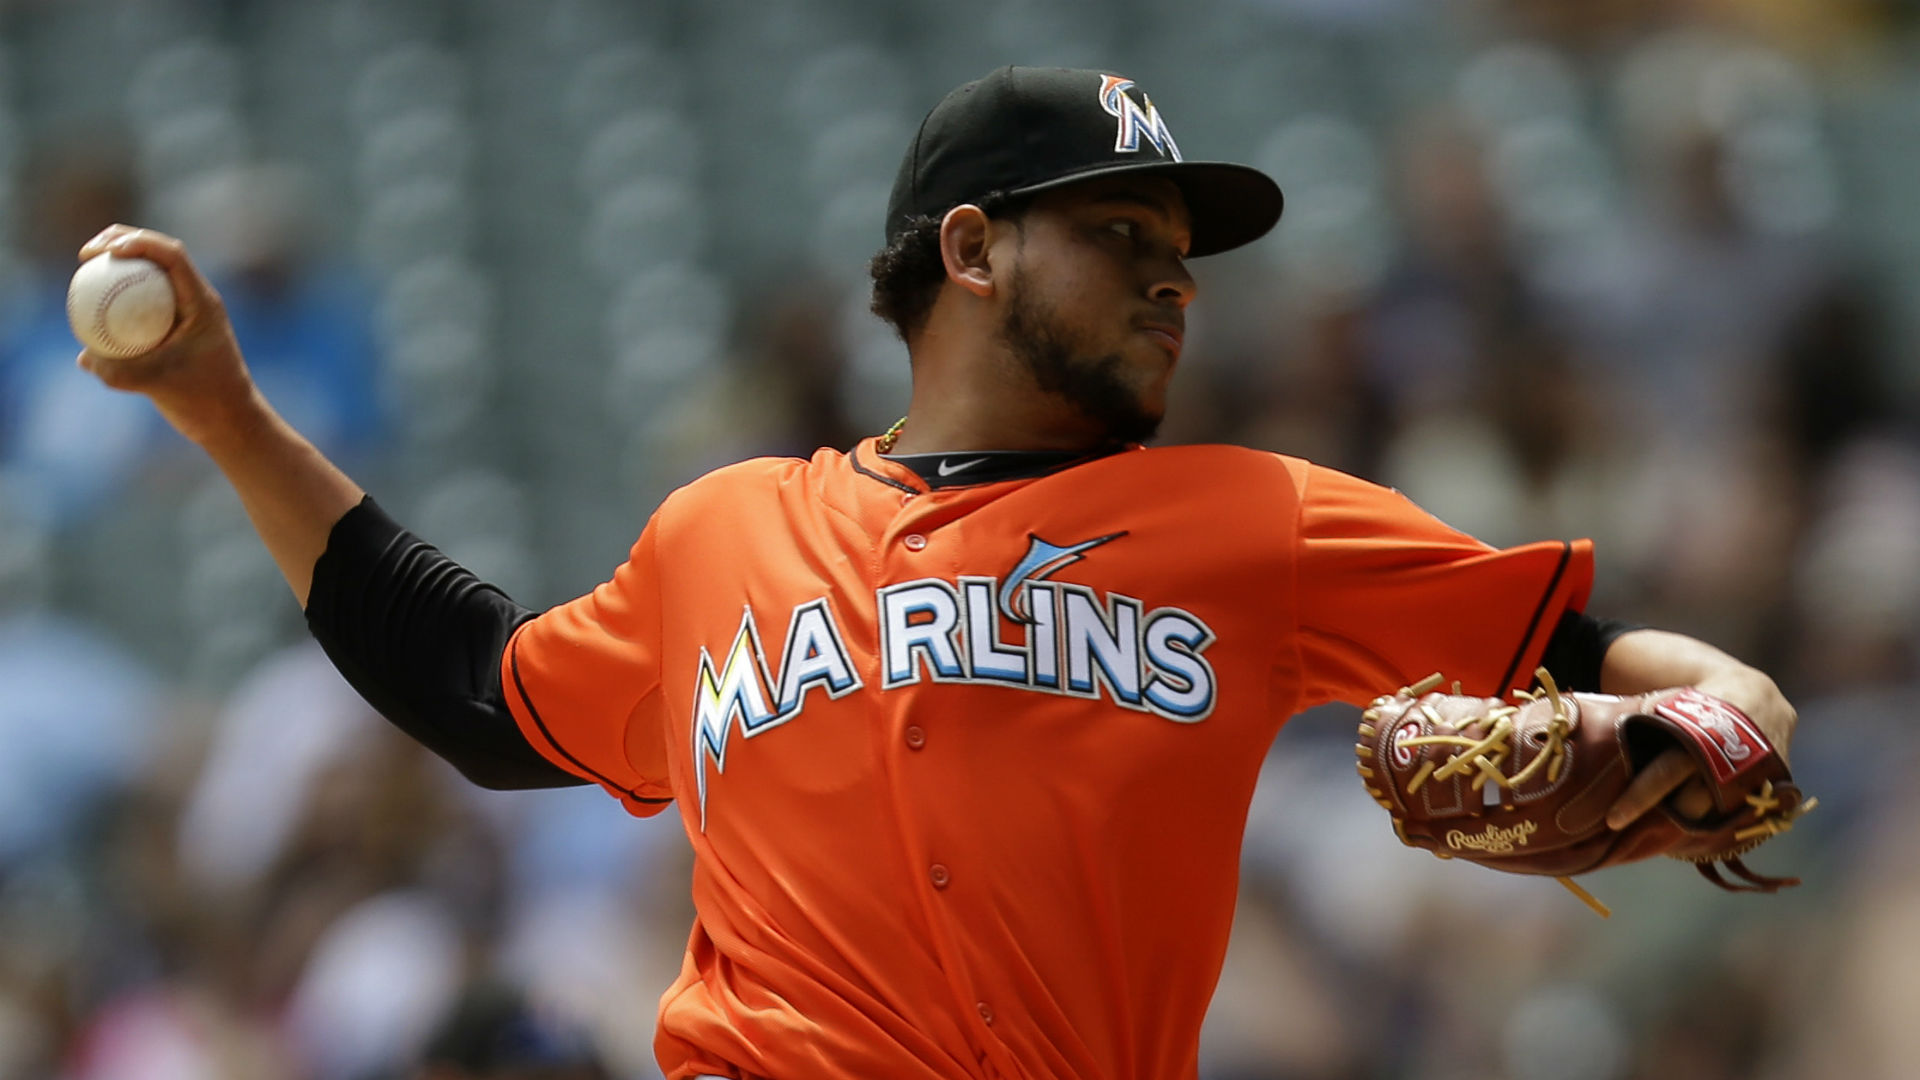 Henderson Alvarez, Mat Latos injuries add to string of Marlins losses